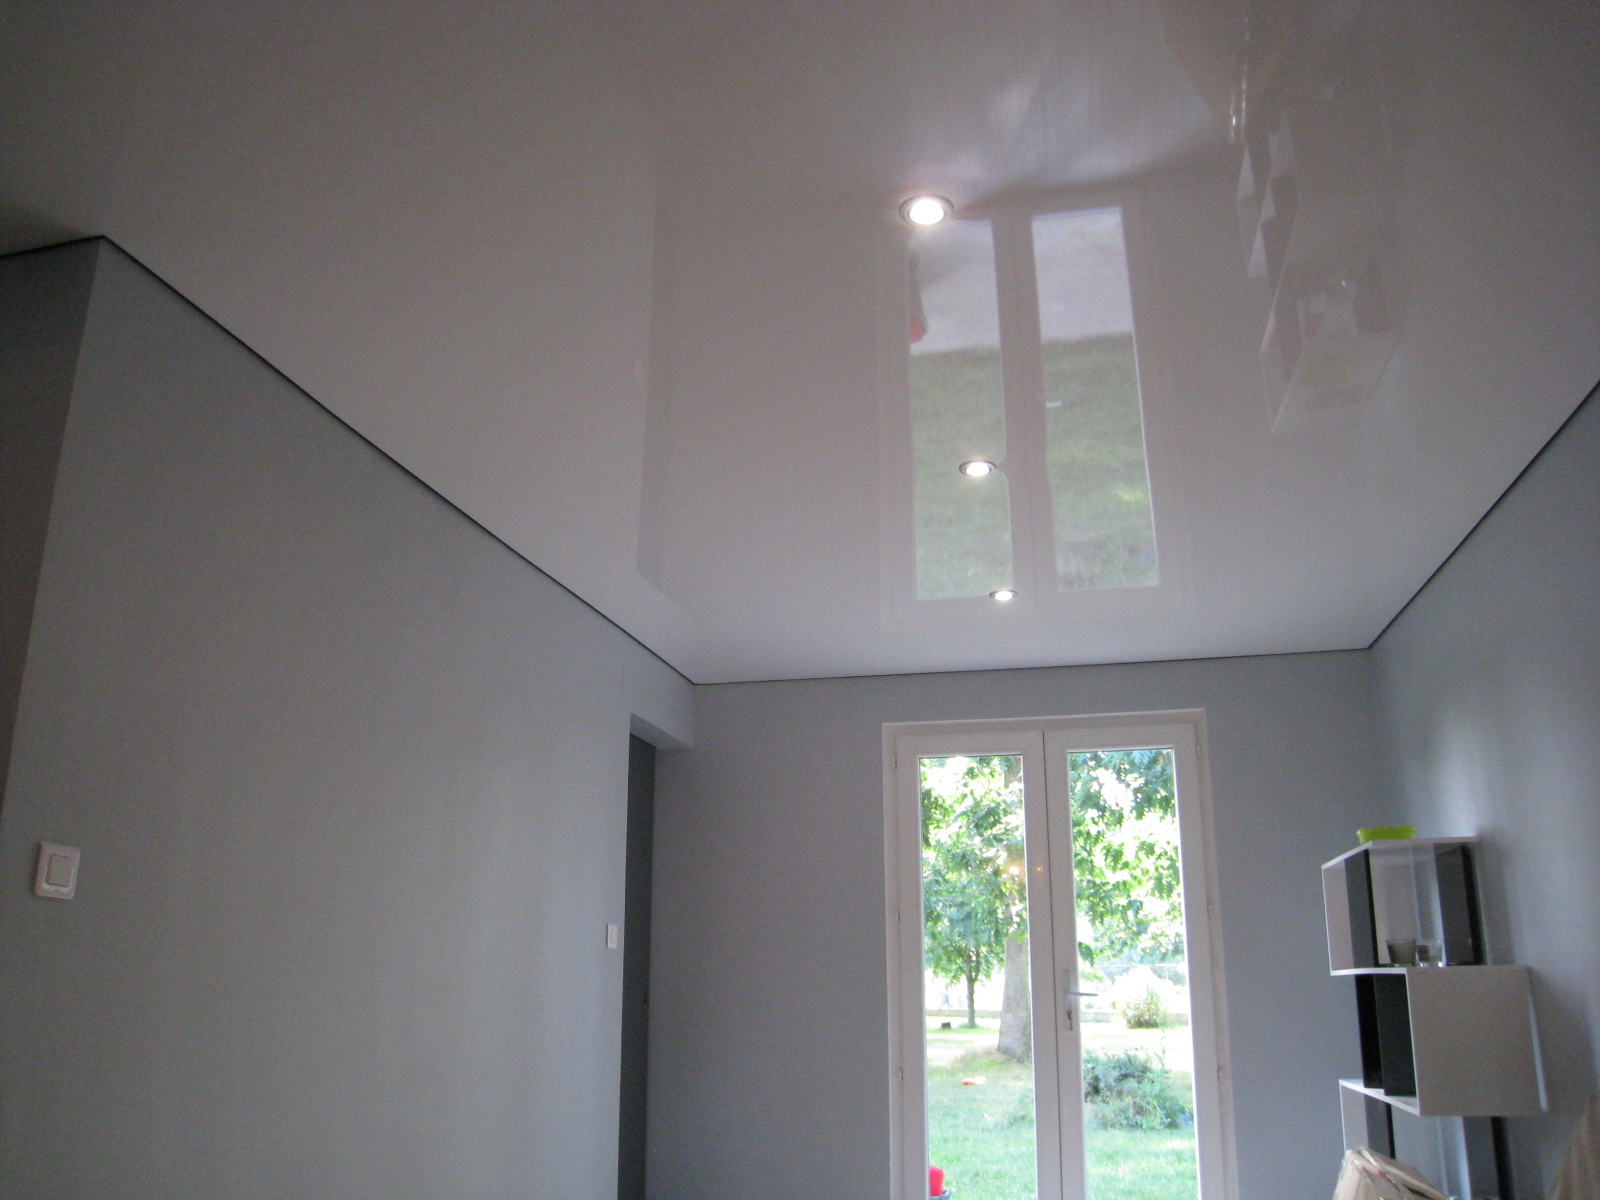 D coration r novation plafond tendu laqu by steeve mieulet for Miroir de plafond